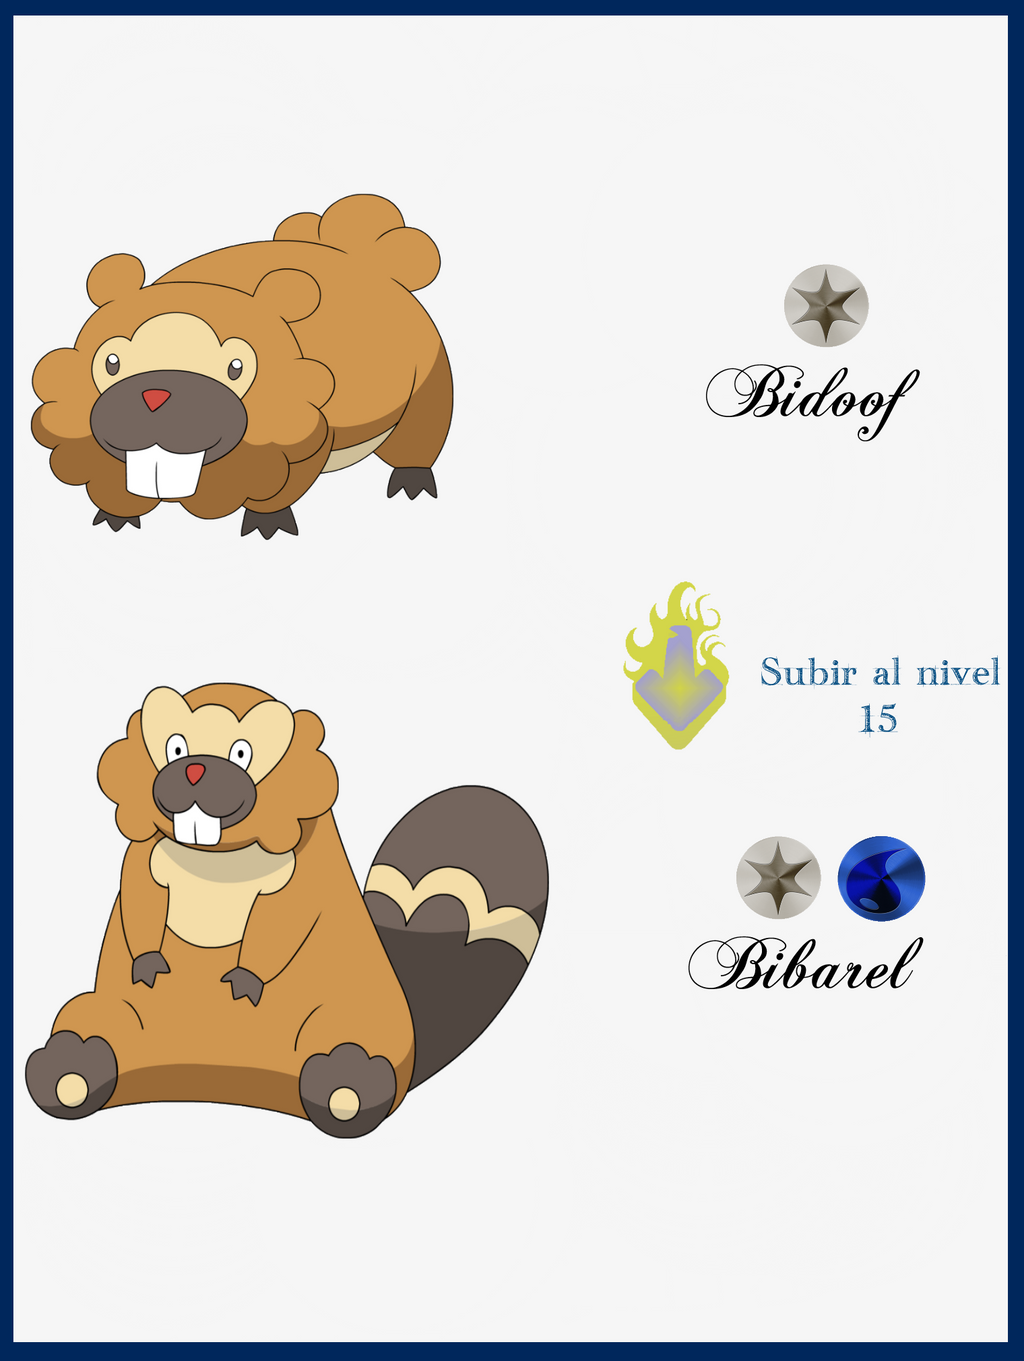 186 Bidoof by Maxconnery on DeviantArt